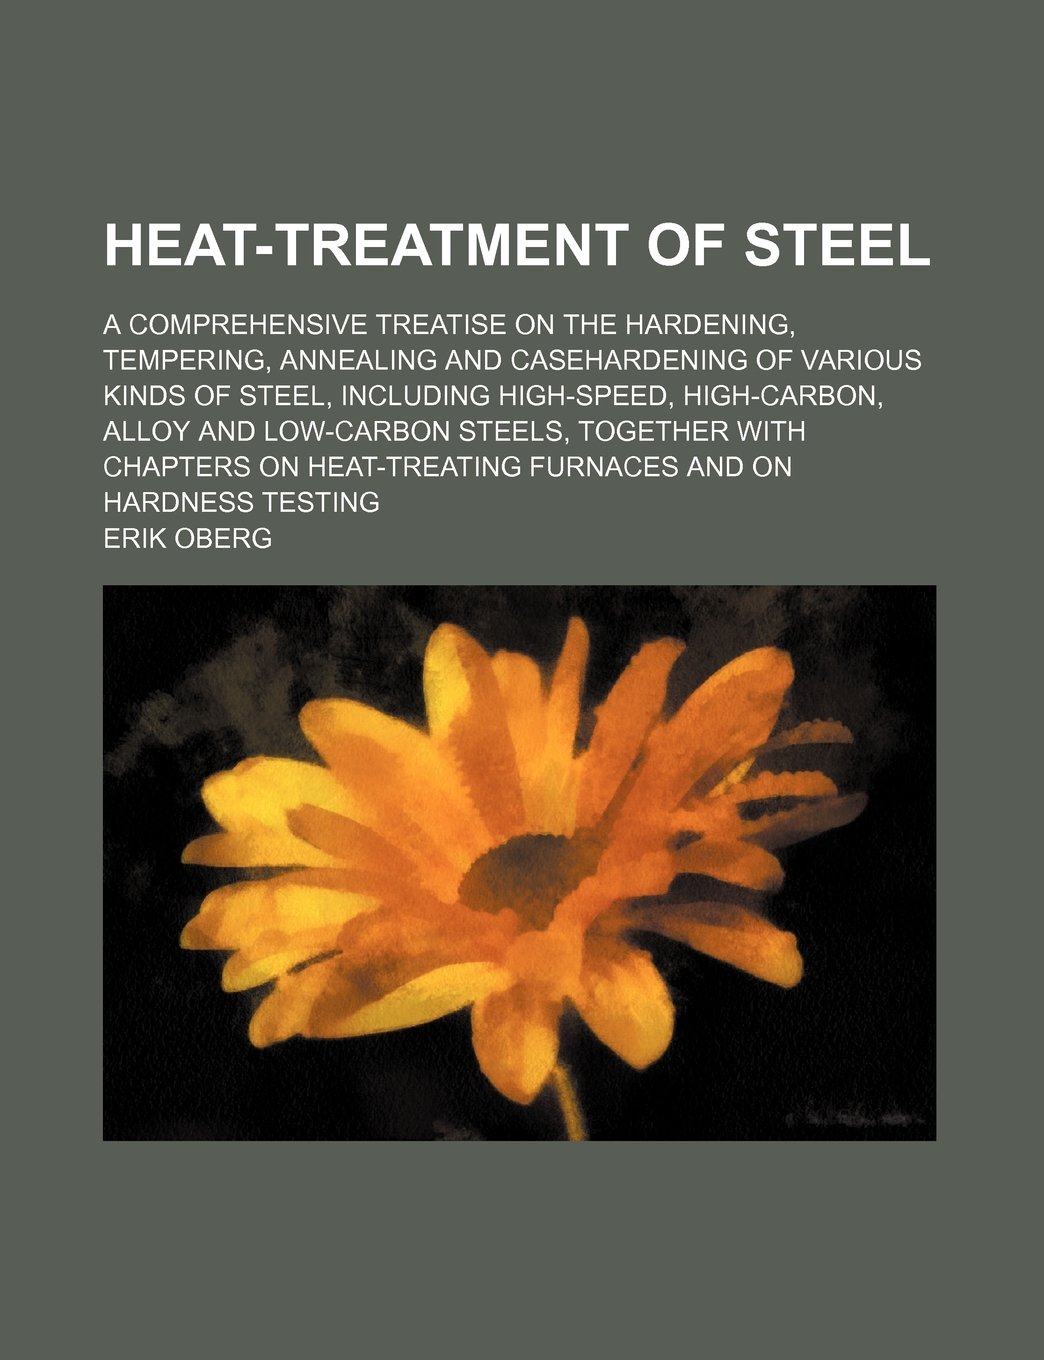 Heat-Treatment of Steel; A Comprehensive Treatise on the Hardening, Tempering, Annealing and Casehardening of Various Kinds of Steel, Including High-S